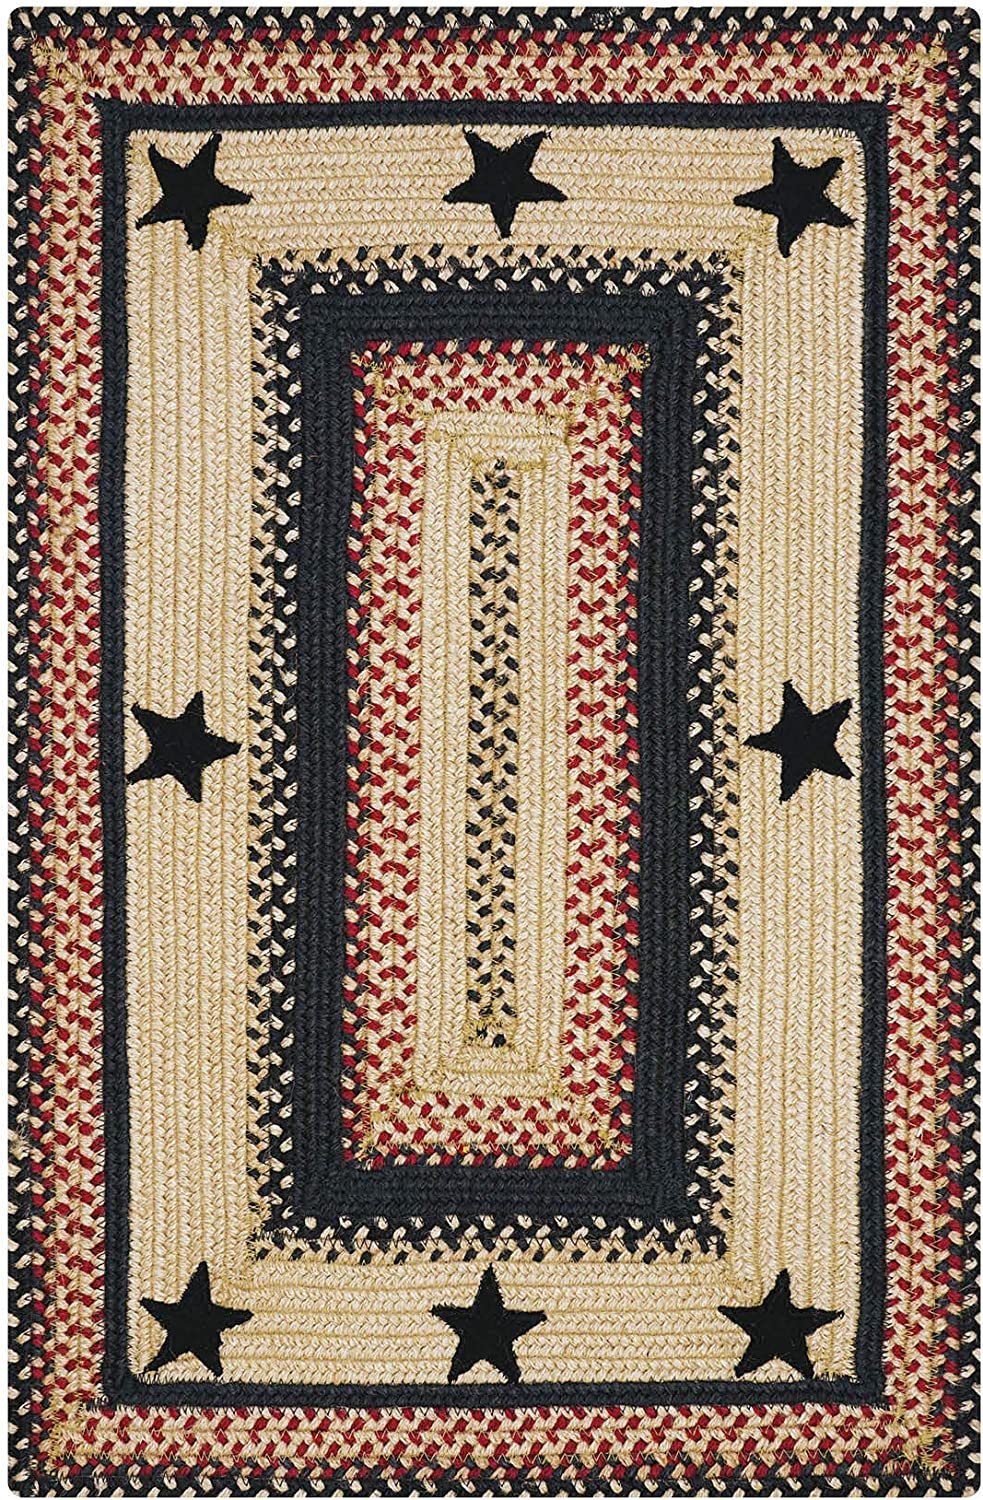 Primitive Star Gloucester Premium Jute Braided Area Rug by Homespice, 20 x 30 Rectangular Black, Reversible, Natural Jute Yarn Rustic, Country, Primitive, Farmhouse Style - 30 Day Risk Free Purchase